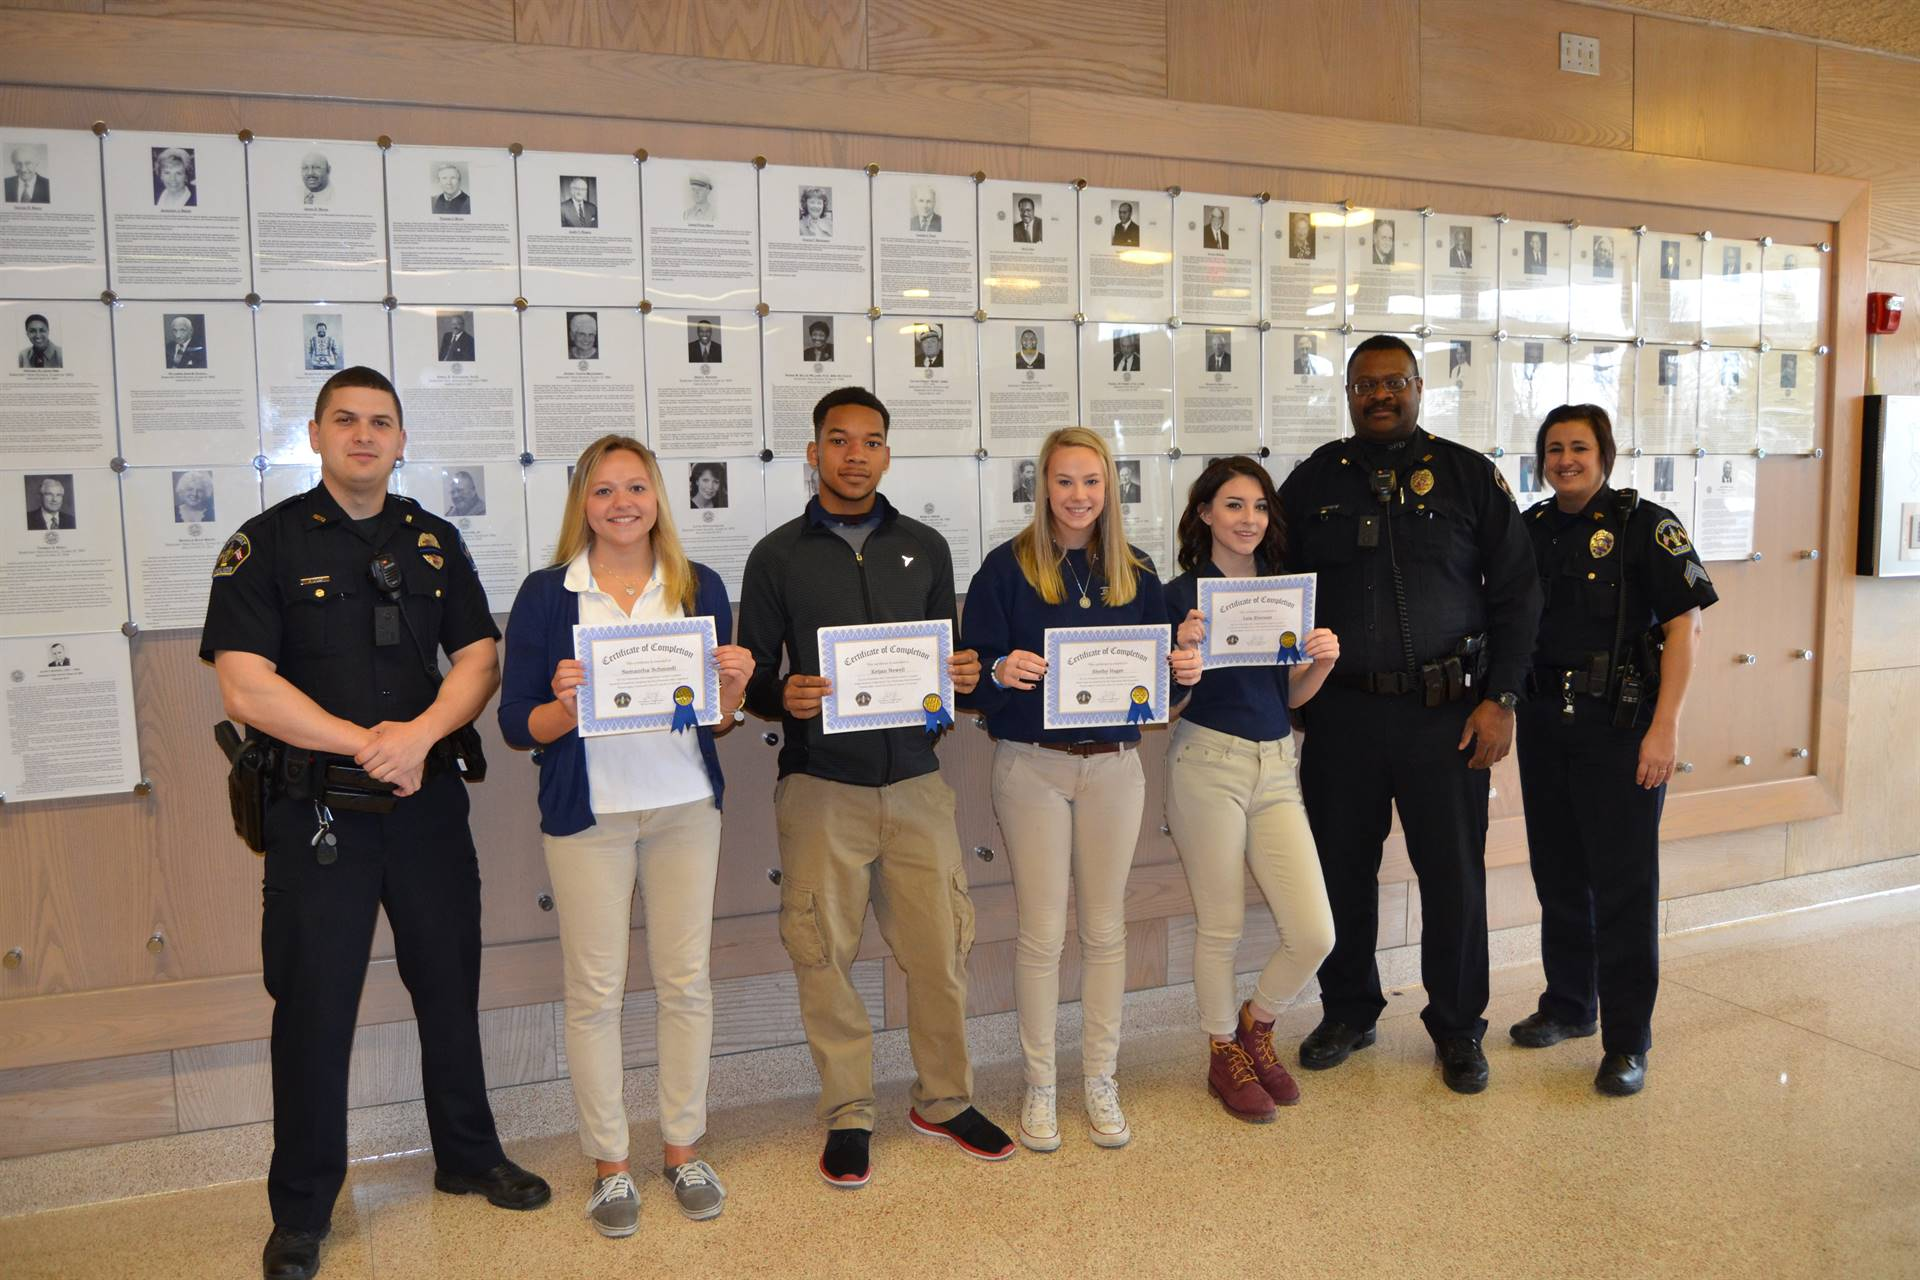 Students intern with Sandusky Police Department